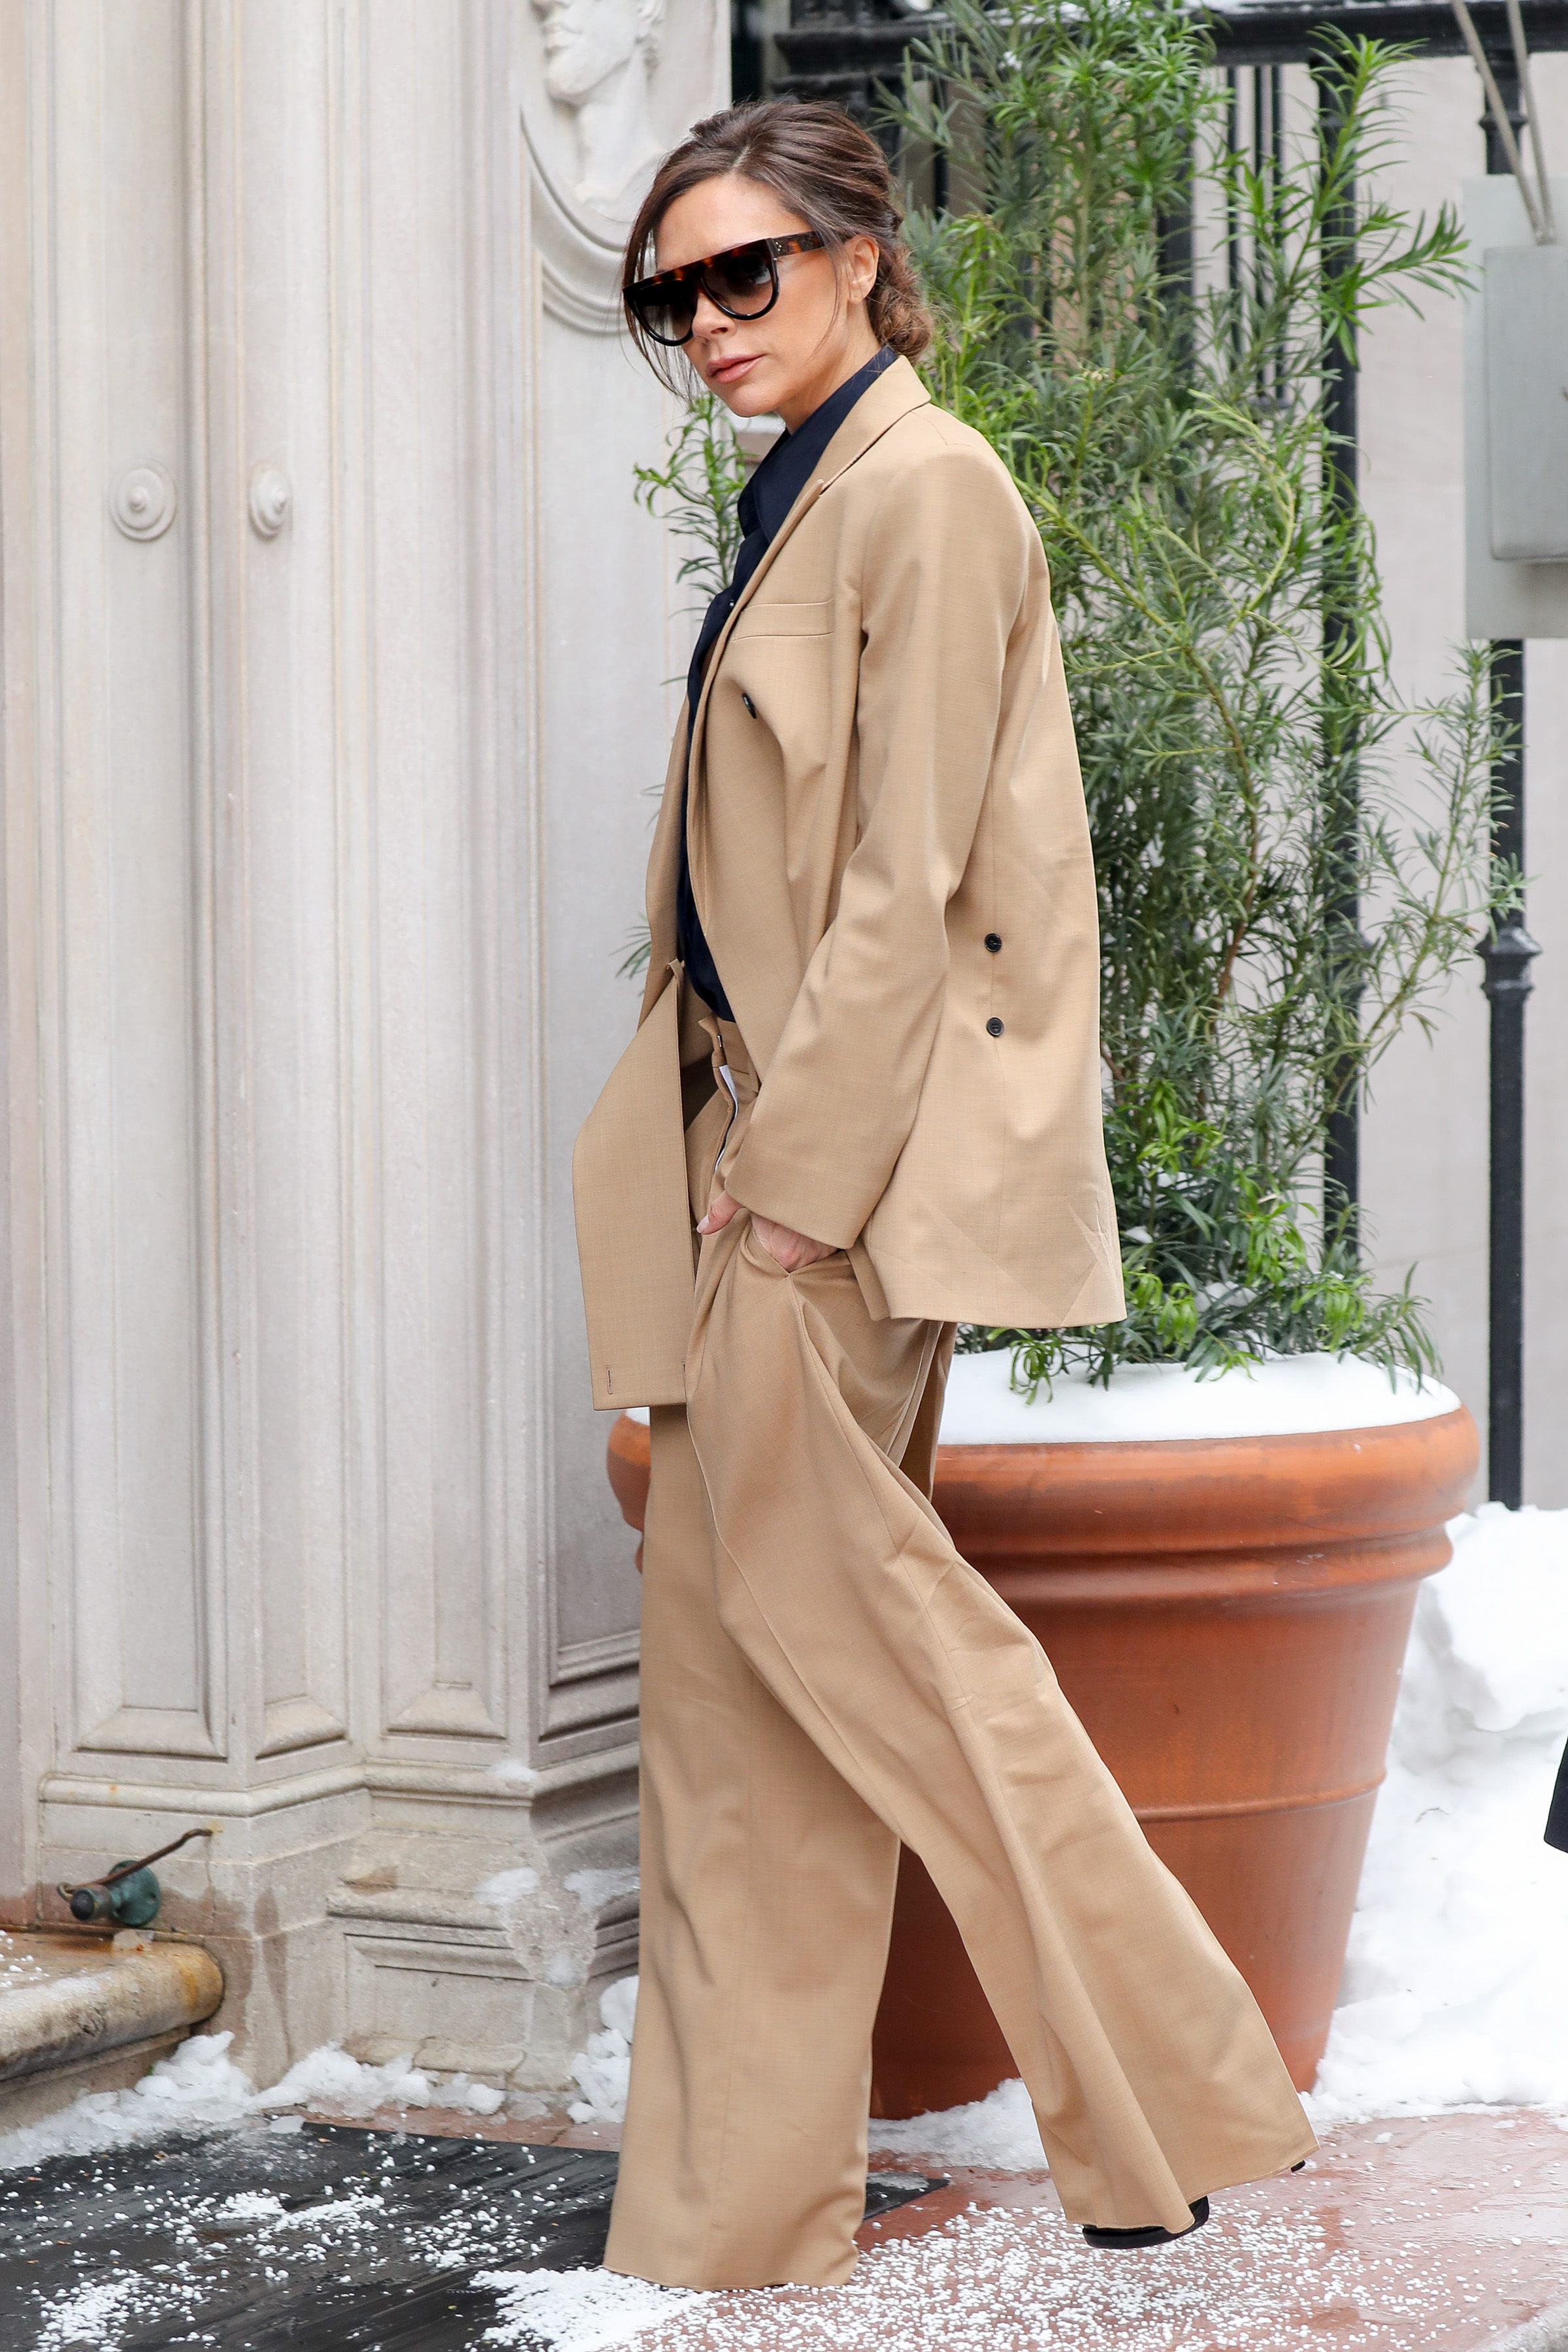 Fashionable Victoria Beckham wore a beige trouser suit while heading for a meetings in Midtown, New York City